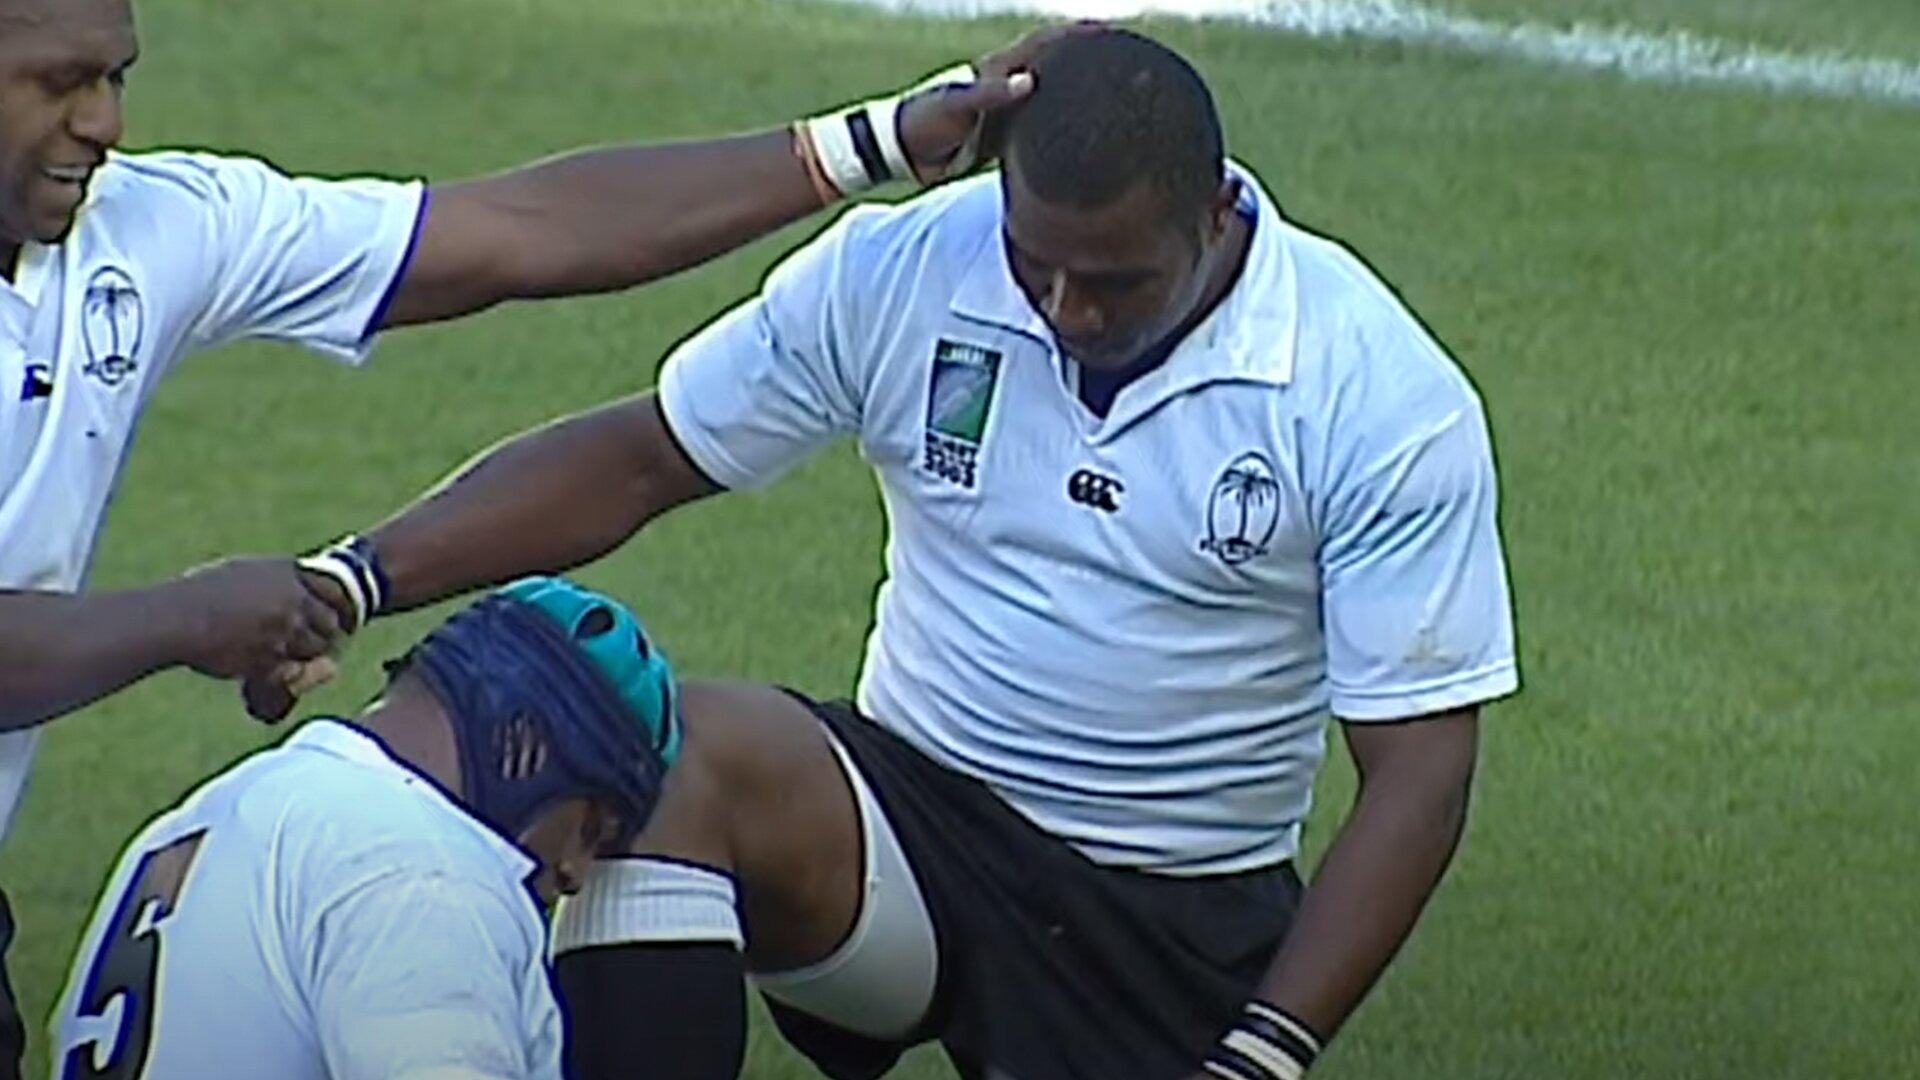 The Reason why Rupeni Caucaunibuca had a 99 speed rating in Rugby 06